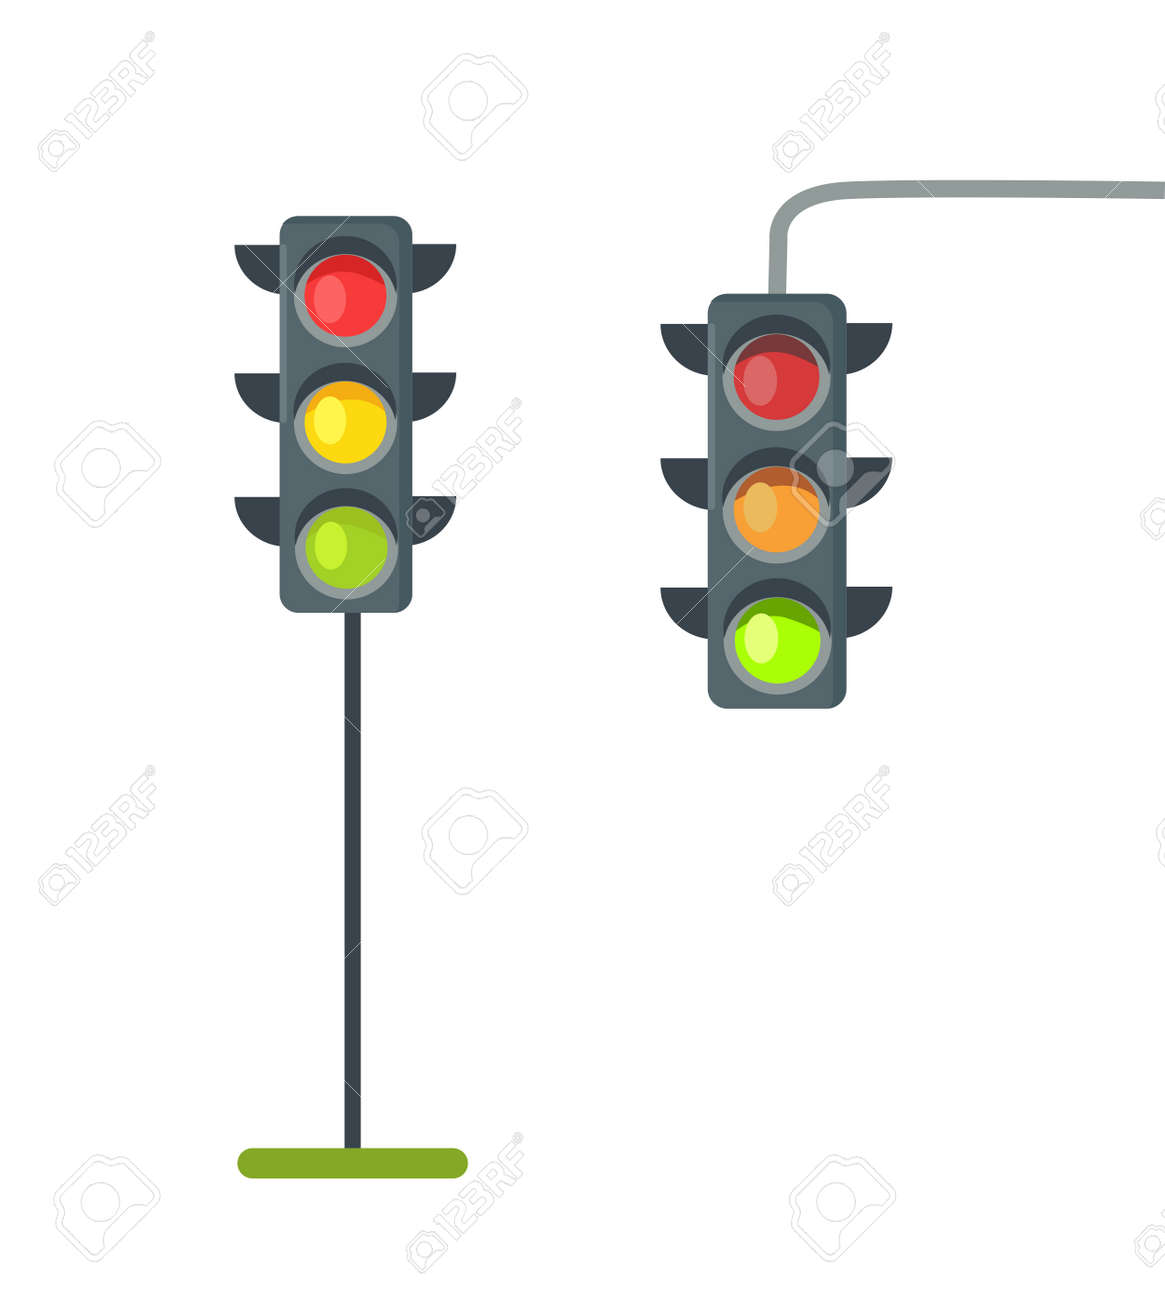 Icons of Traffic Lights Isolated Vector on White - 93655727